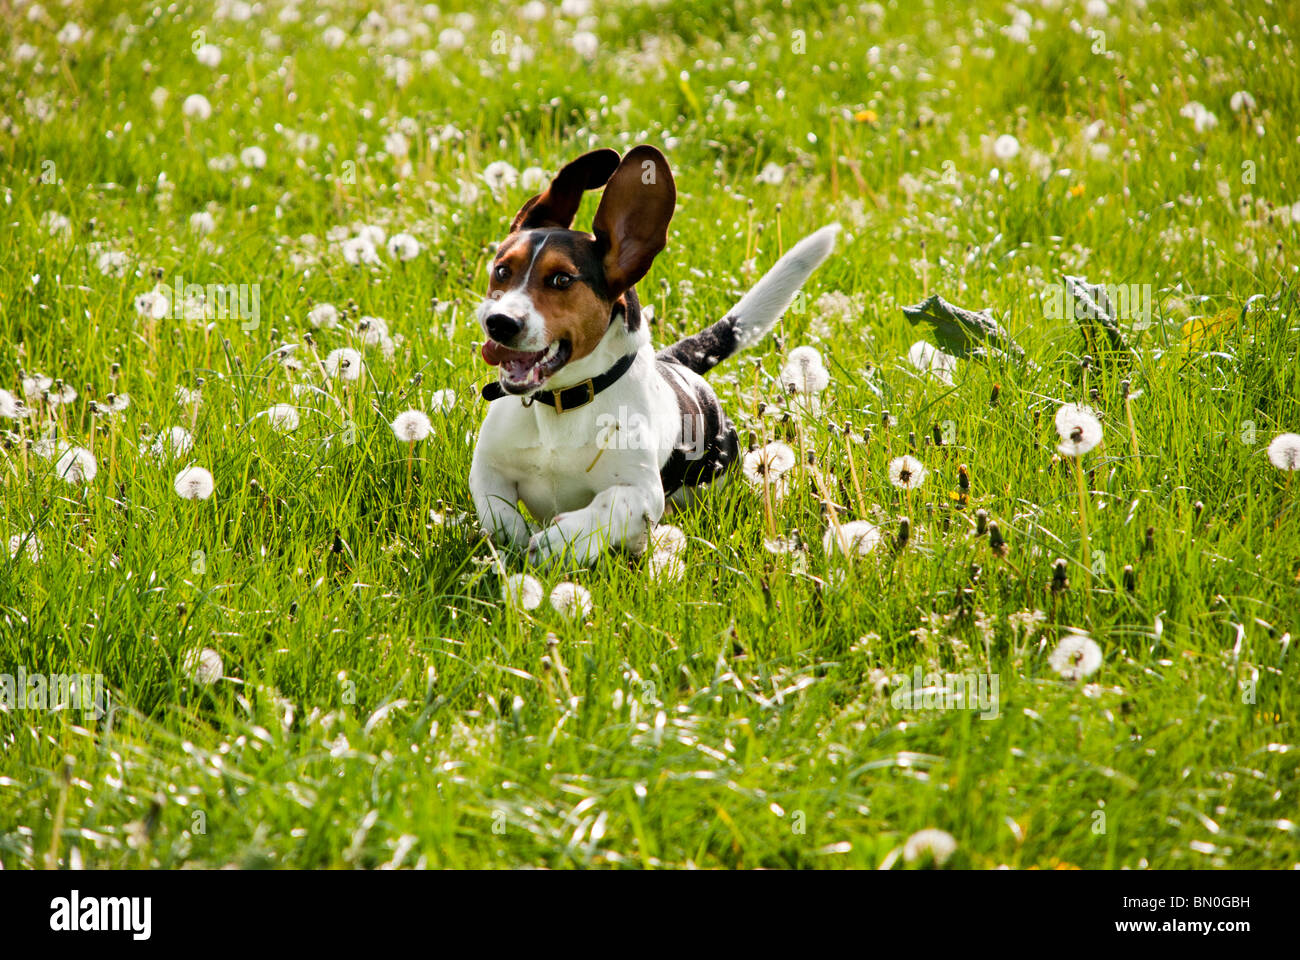 Basset Beagle crossbreed (Bagel), running through a field of dandelions - Stock Image